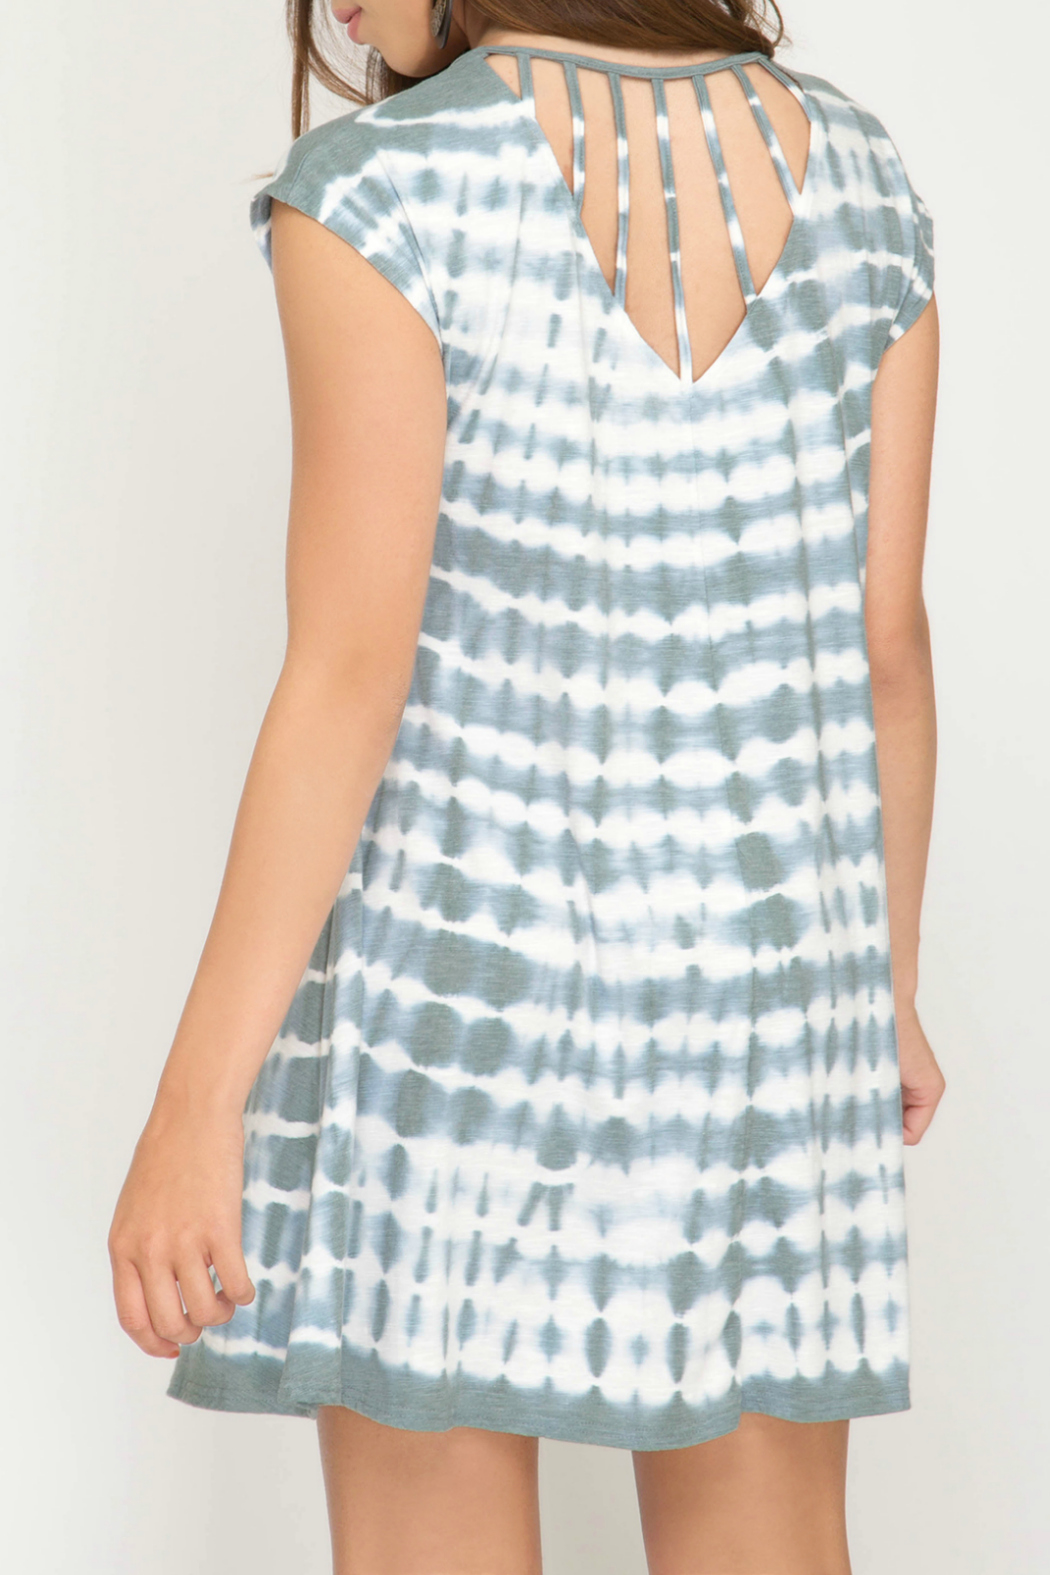 She + Sky Tie Dye Dress w Back Strap Detail - Front Full Image